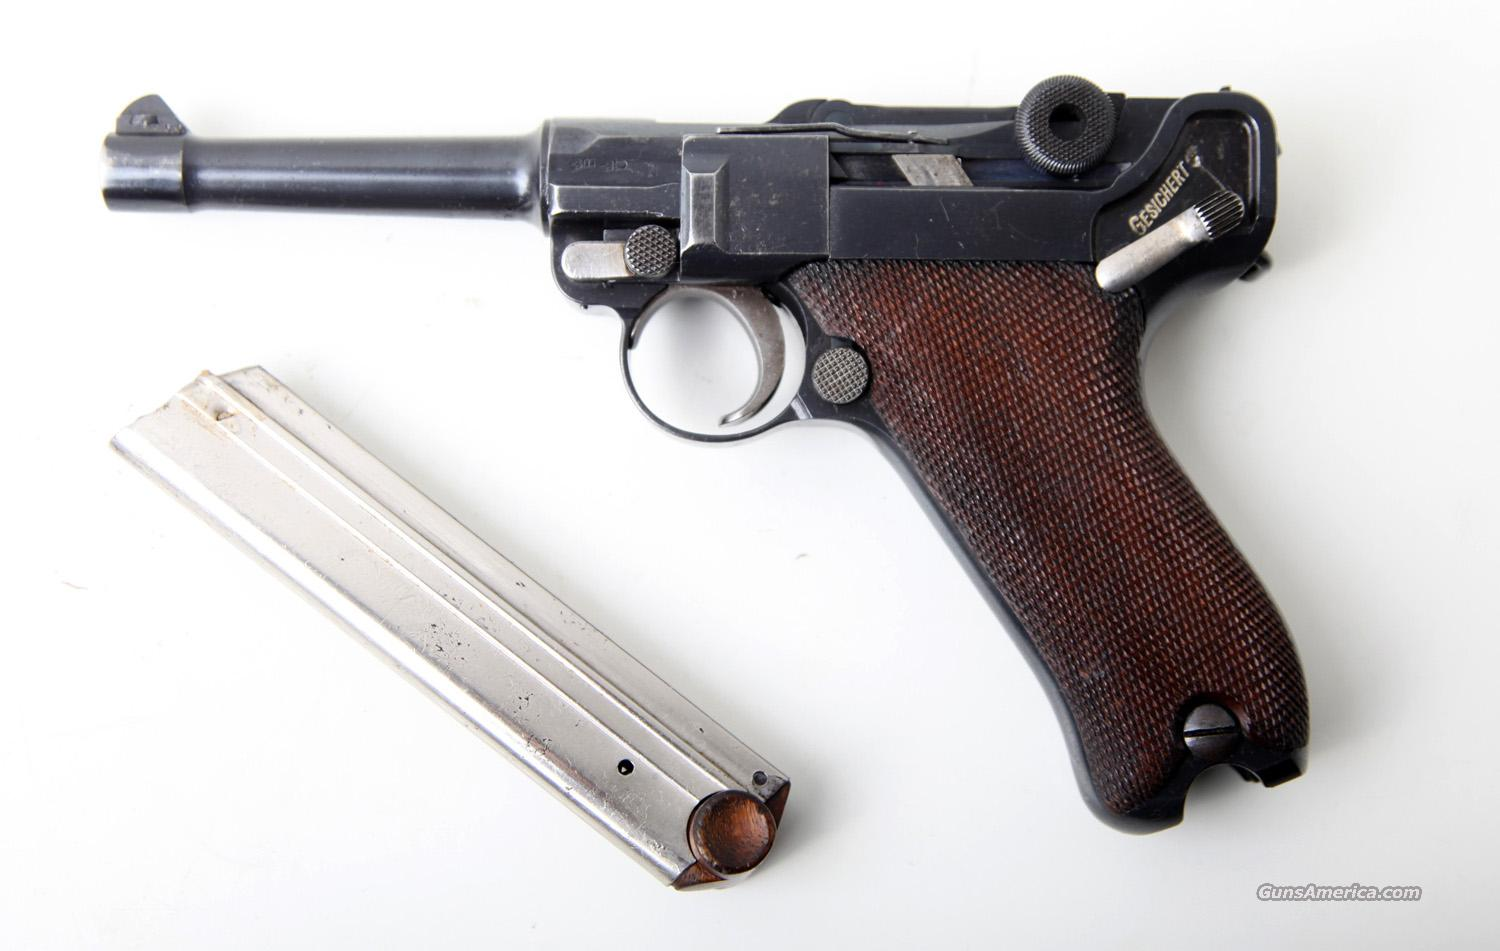 1908 DWM MILITARY/POLICE GERMAN LUGER W/MATCHING NUMBERED MAGAZINE  Guns > Pistols > Luger Pistols